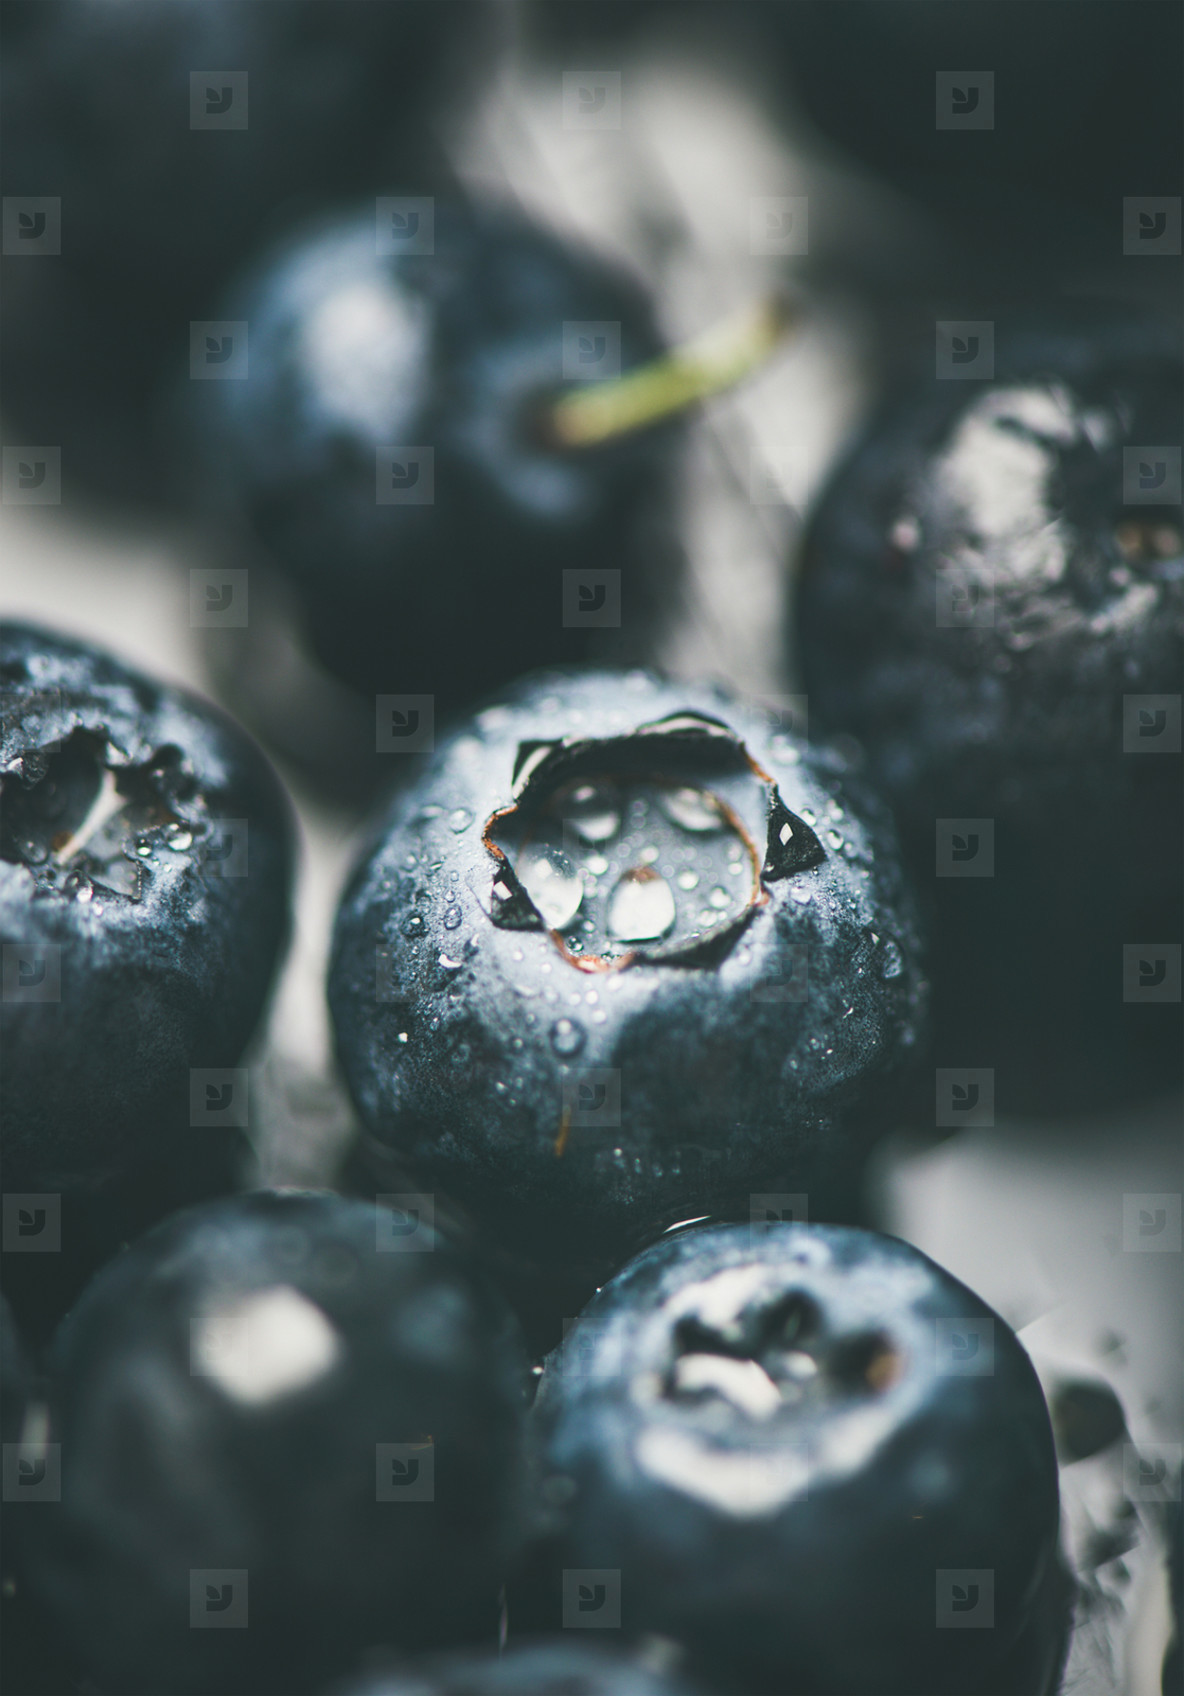 Fresh forest blueberry texture  wallpaper and background  vertical composition  close up